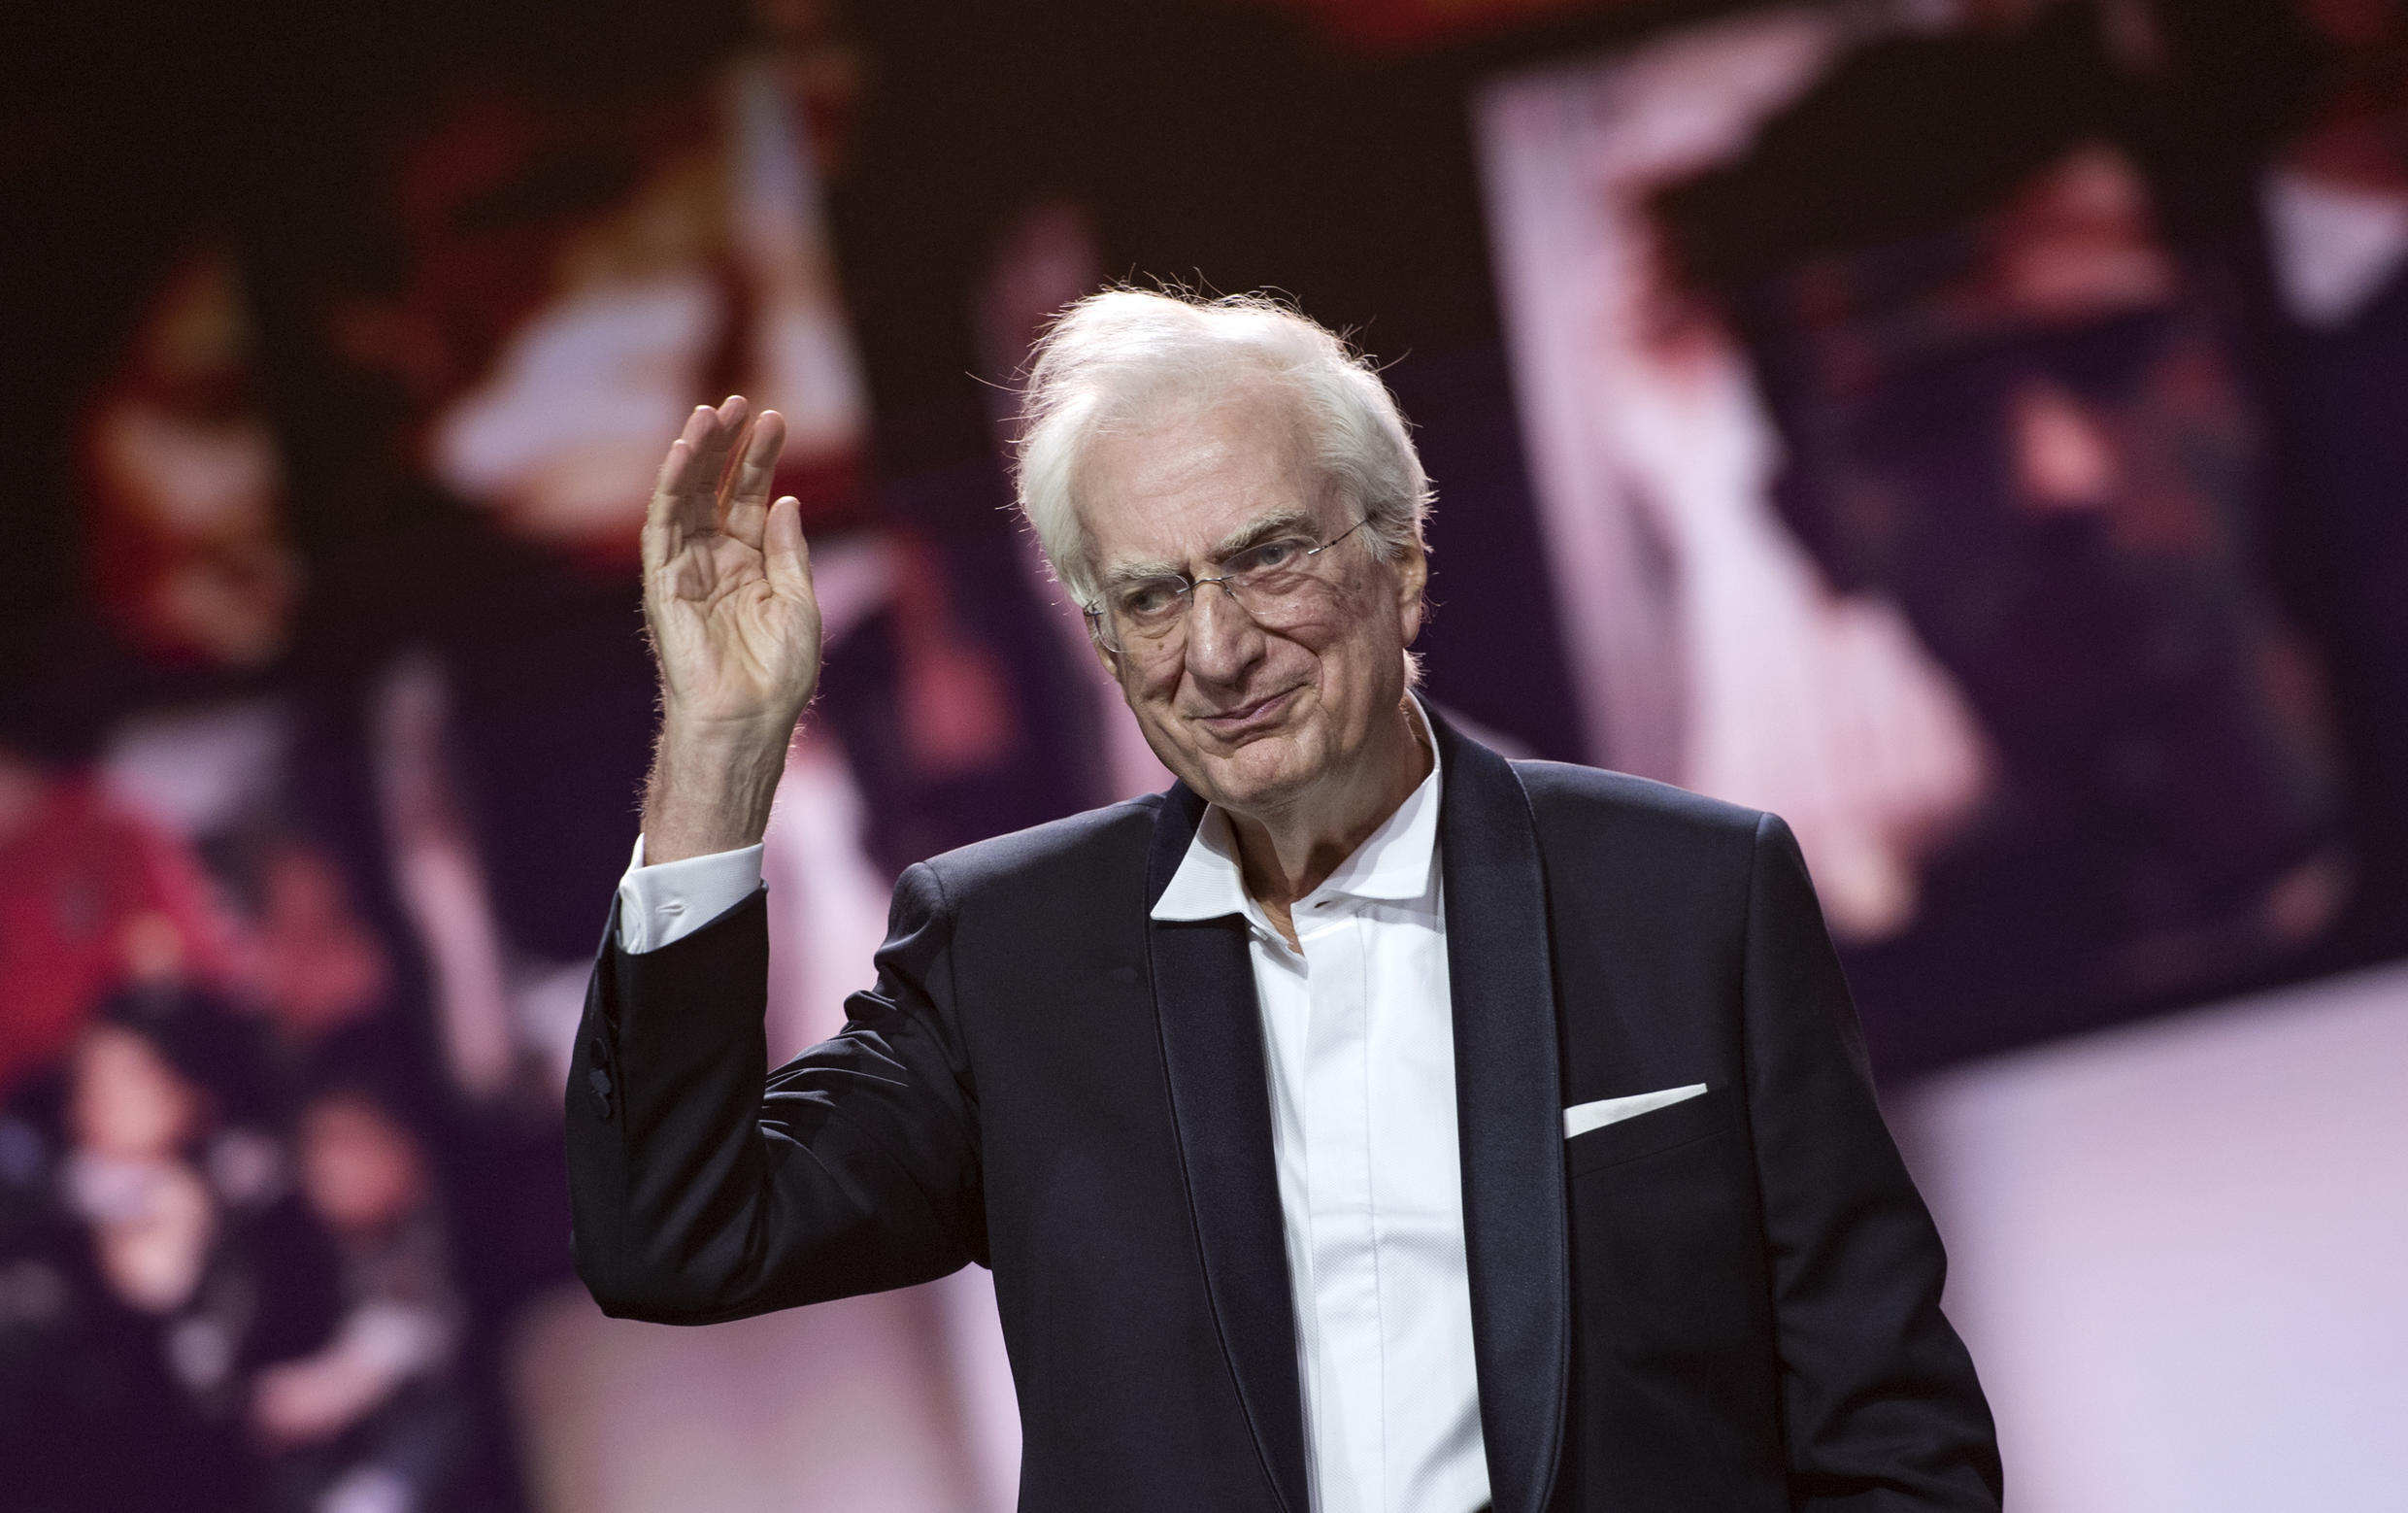 French director Bertrand Tavernier won fans and international fame with his unique mix of classy period pieces and campaigning contemporary dramas